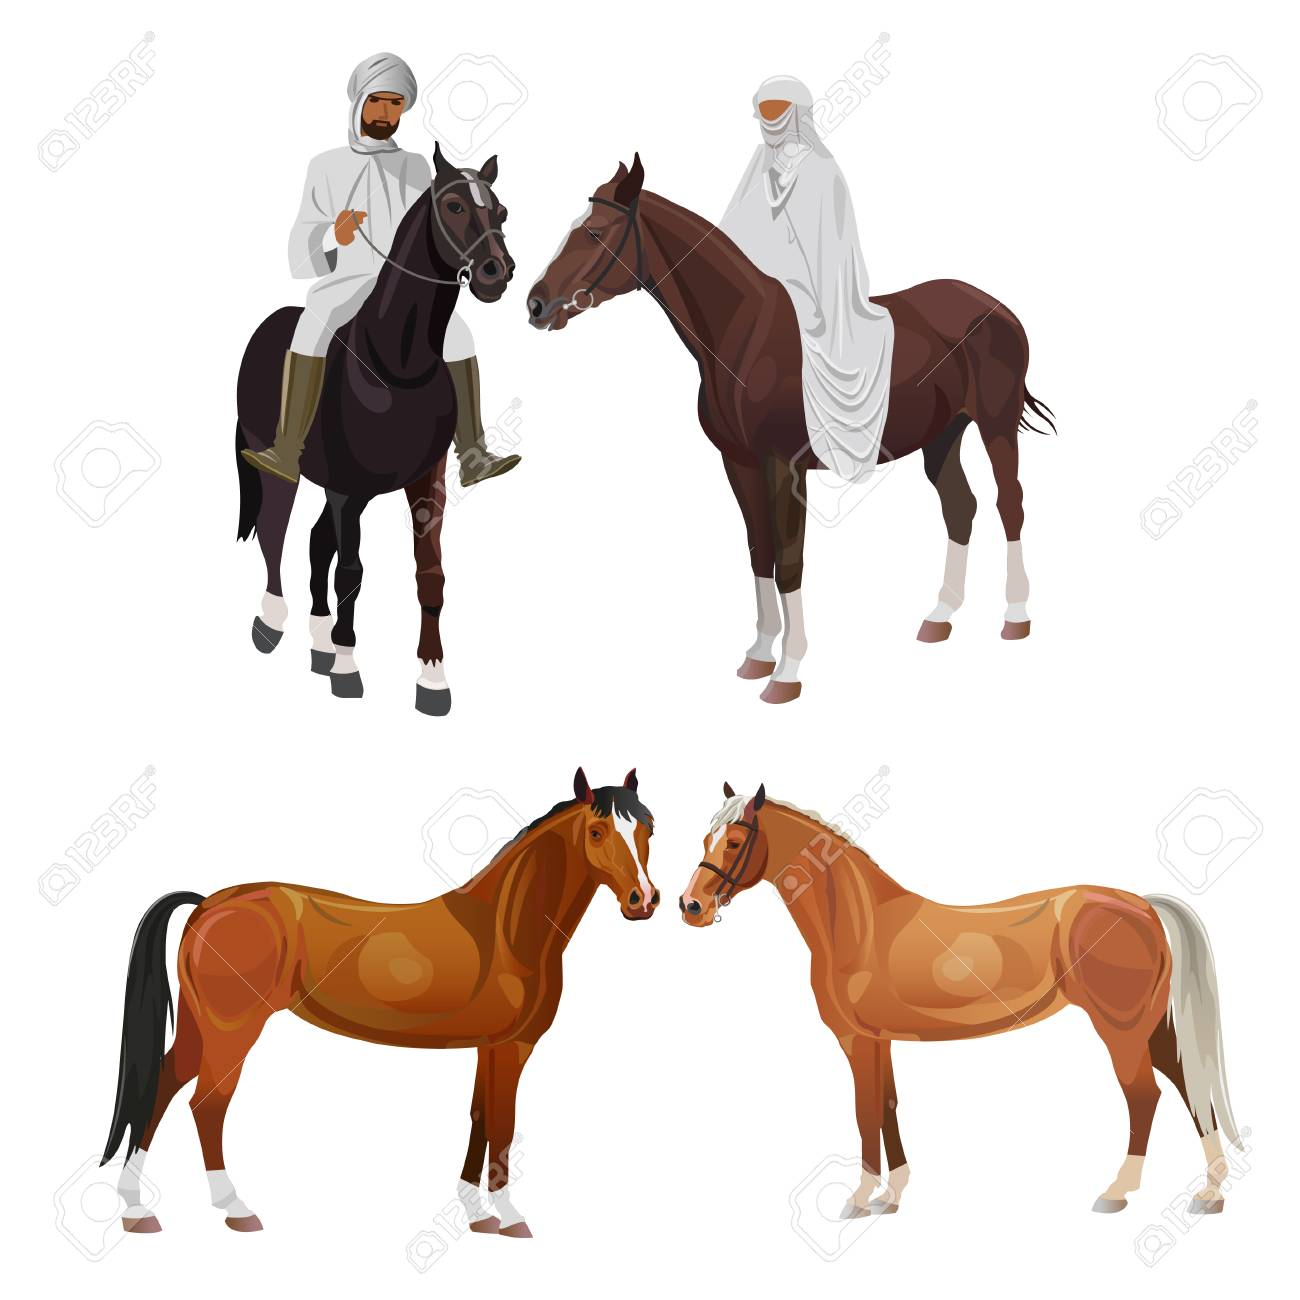 Arabian Riders In Traditional Dress And Horses Vector Illustration Royalty Free Cliparts Vectors And Stock Illustration Image 103119092